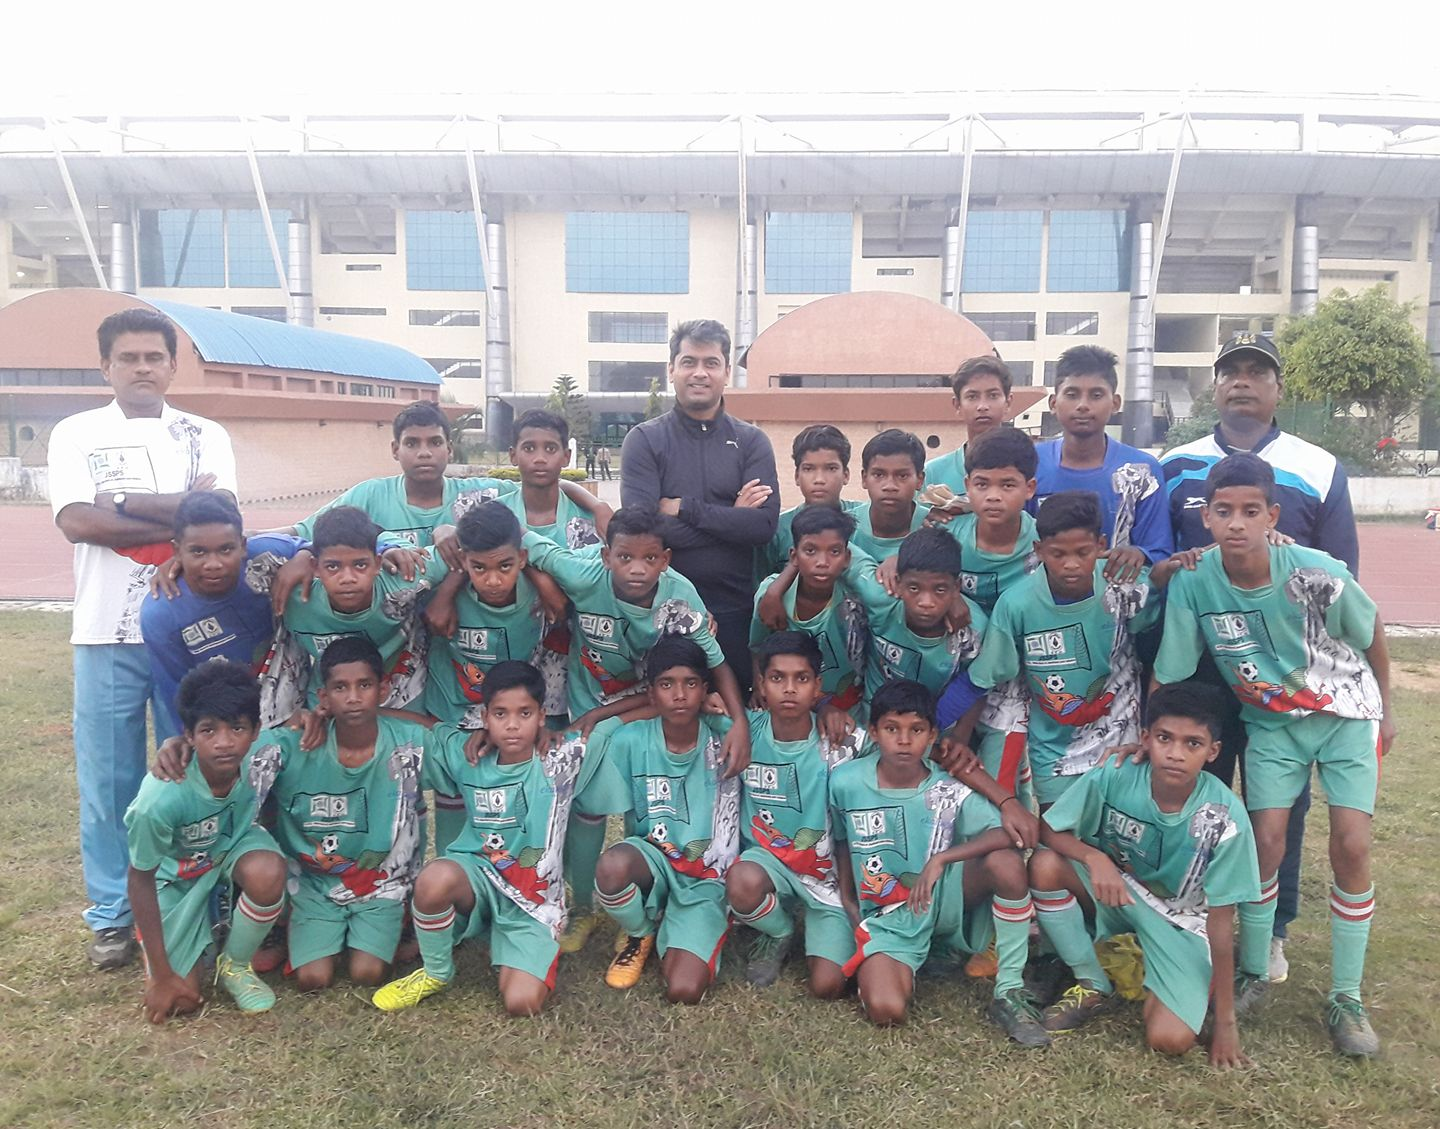 Thank you #AgnimitraPaul for designing such a creative jersey for the boys and girls of our Academy.